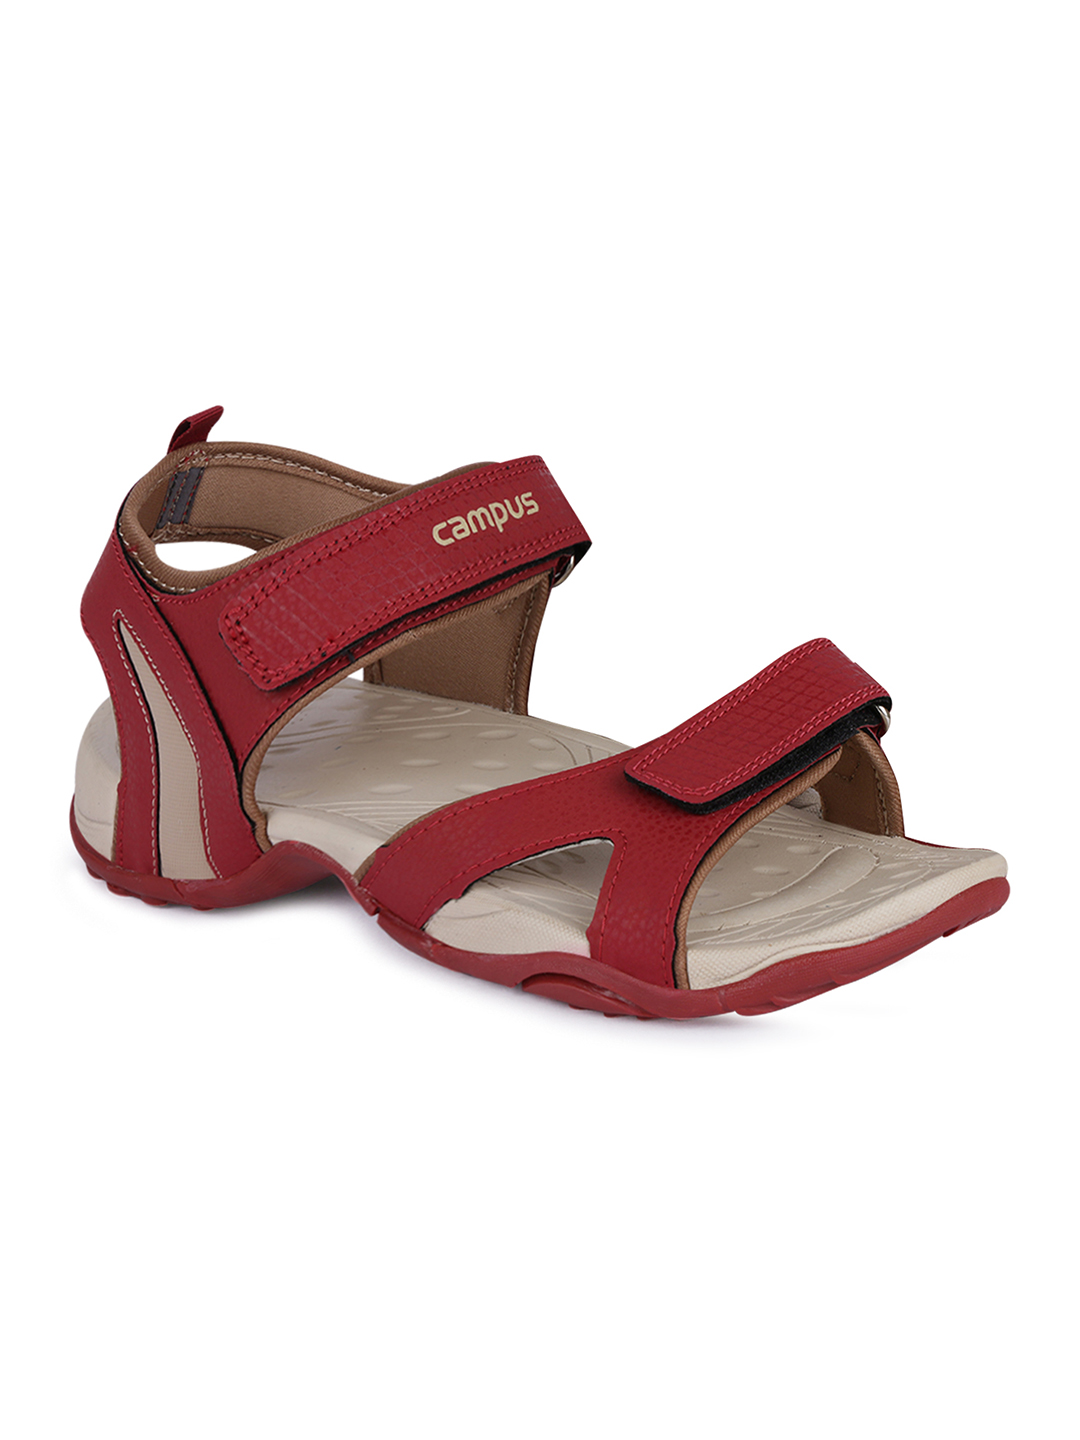 Campus Shoes   Red String-2 Sandals